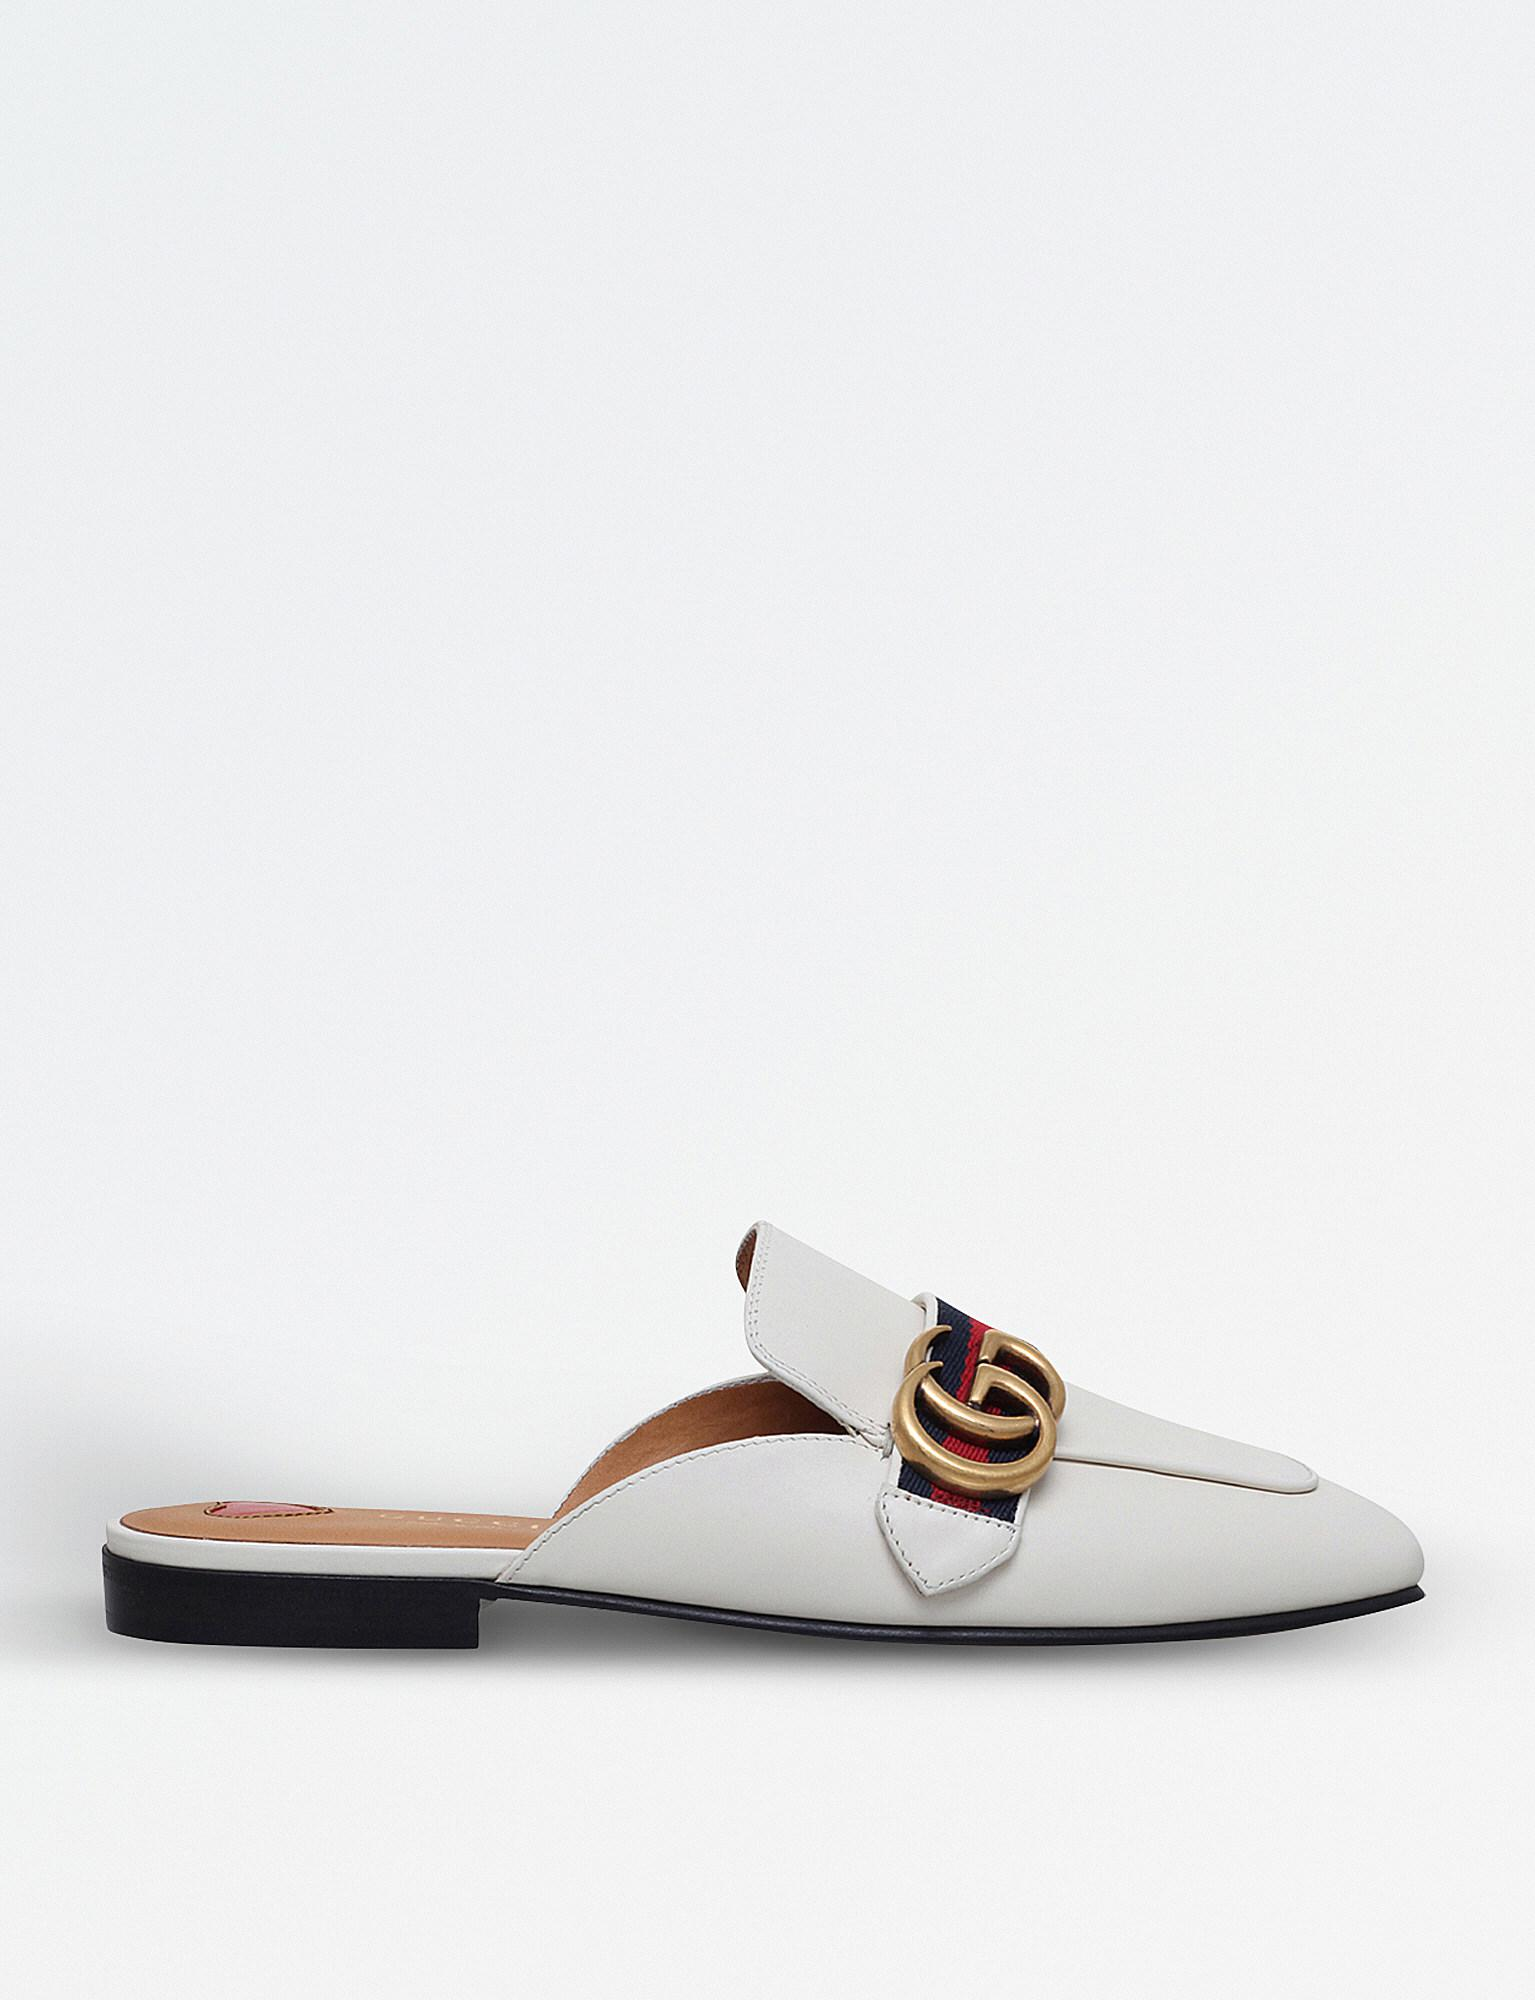 Gucci Peyton Leather Backless Mules in